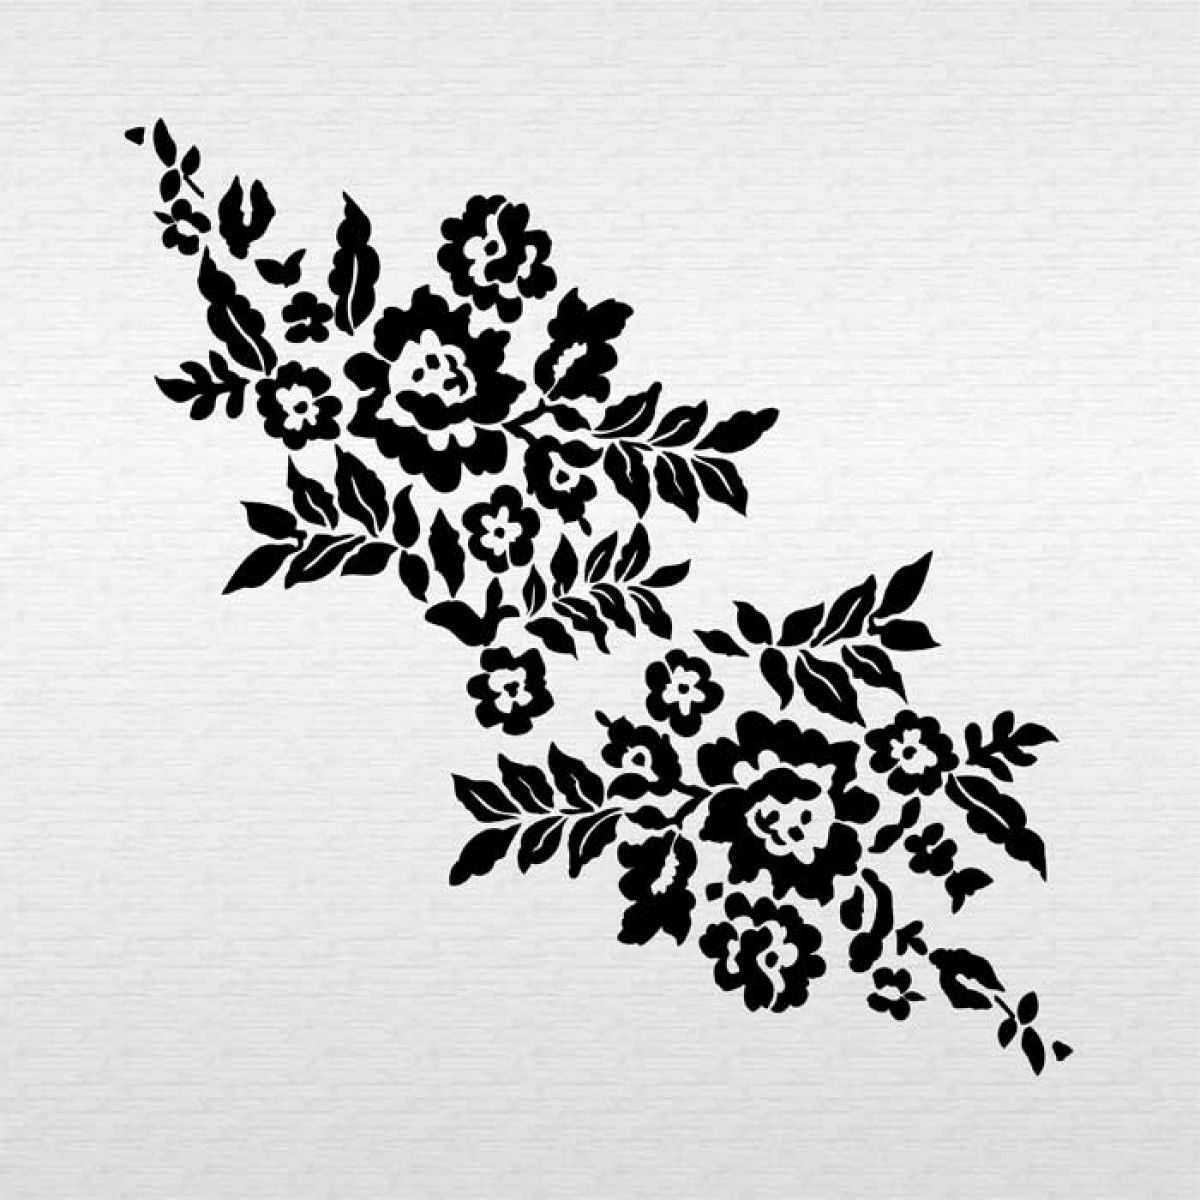 Lace Swag Stencil | Stencil | Pinterest | Stenciling, Lace patterns ...